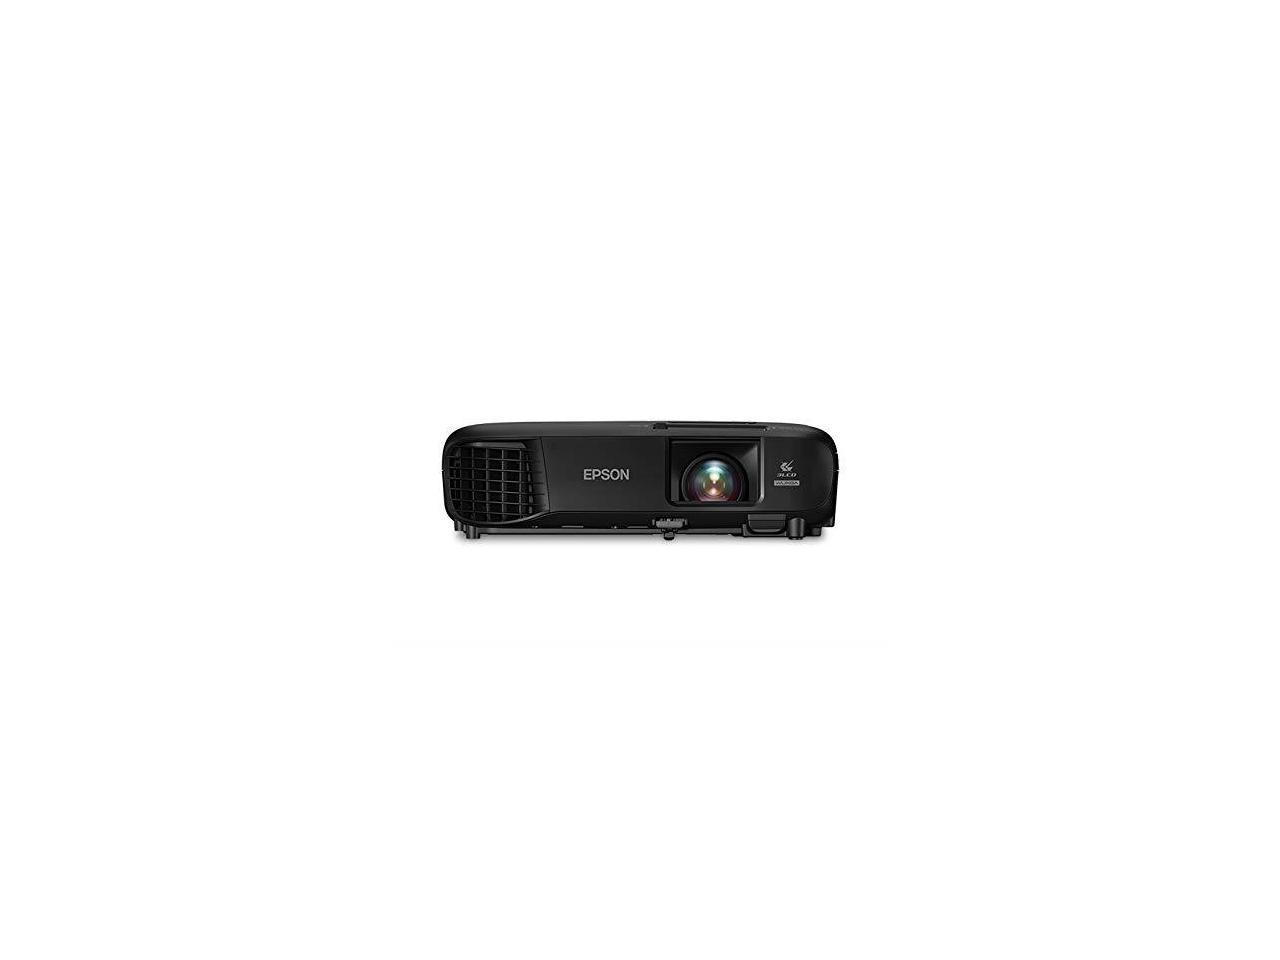 EPSON-PowerLite-1286-Wireless-WUXGA-3LCD-Projector-3600-Lumens-1920-x-1200-1-07 miniature 7